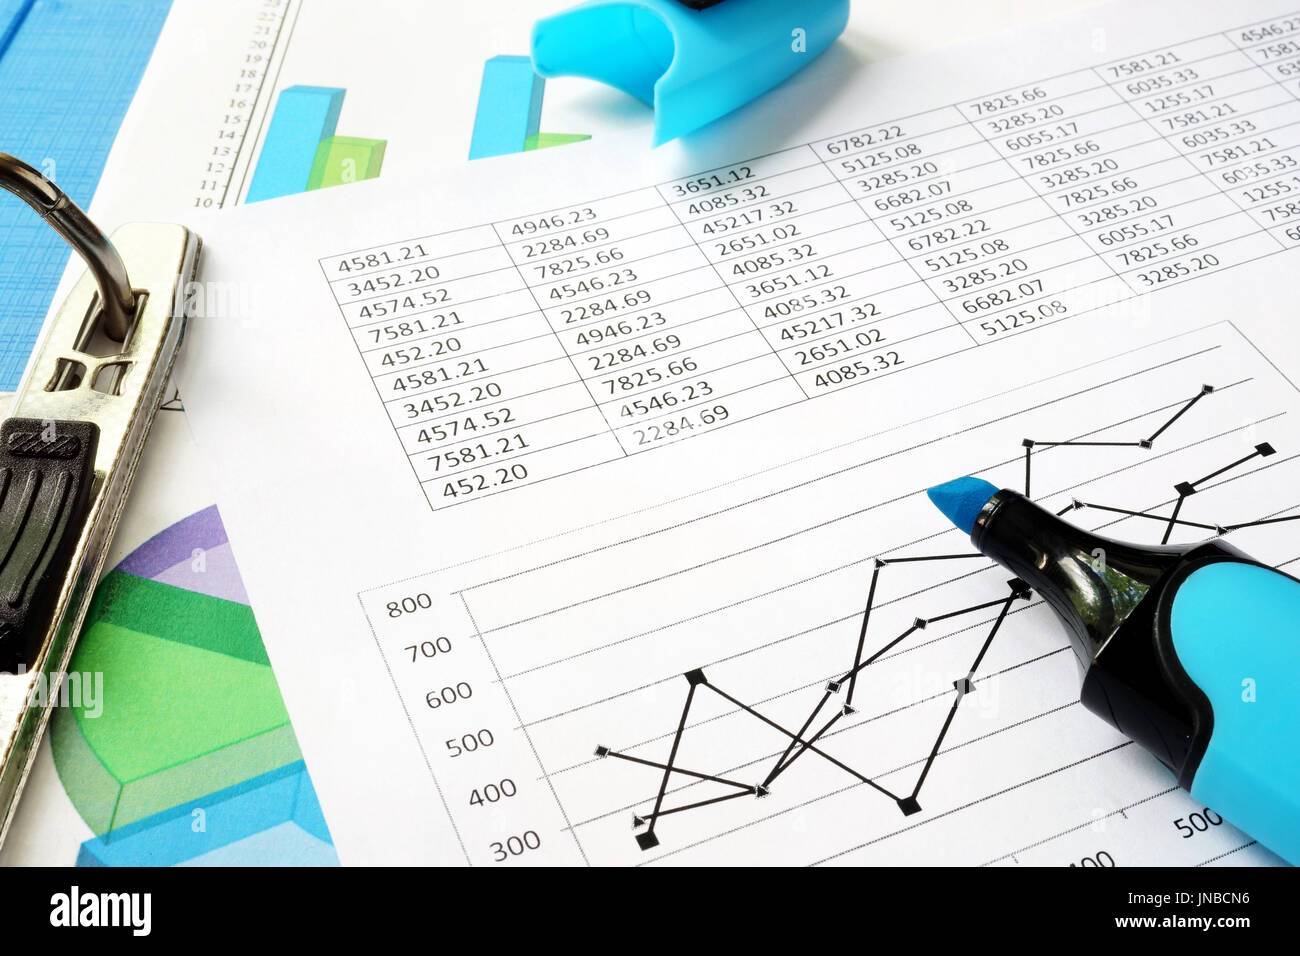 Accountability concept. Financial documents in an office. - Stock Image